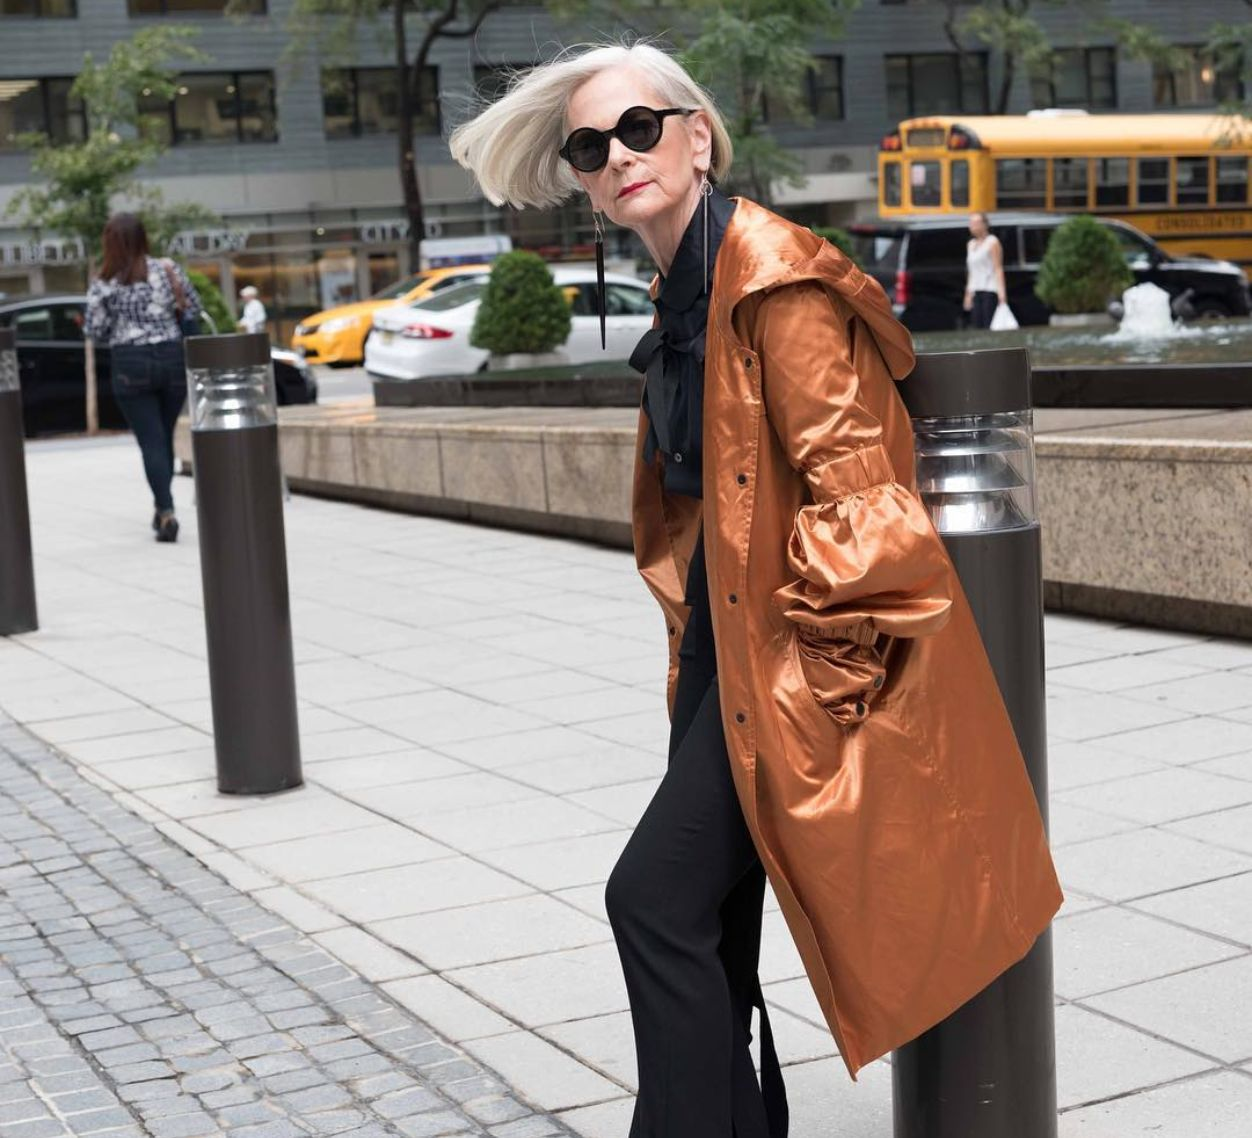 Accidental Icon: 64 Year-Old Fashion Blogger Dominates Instagram With Her Fierce